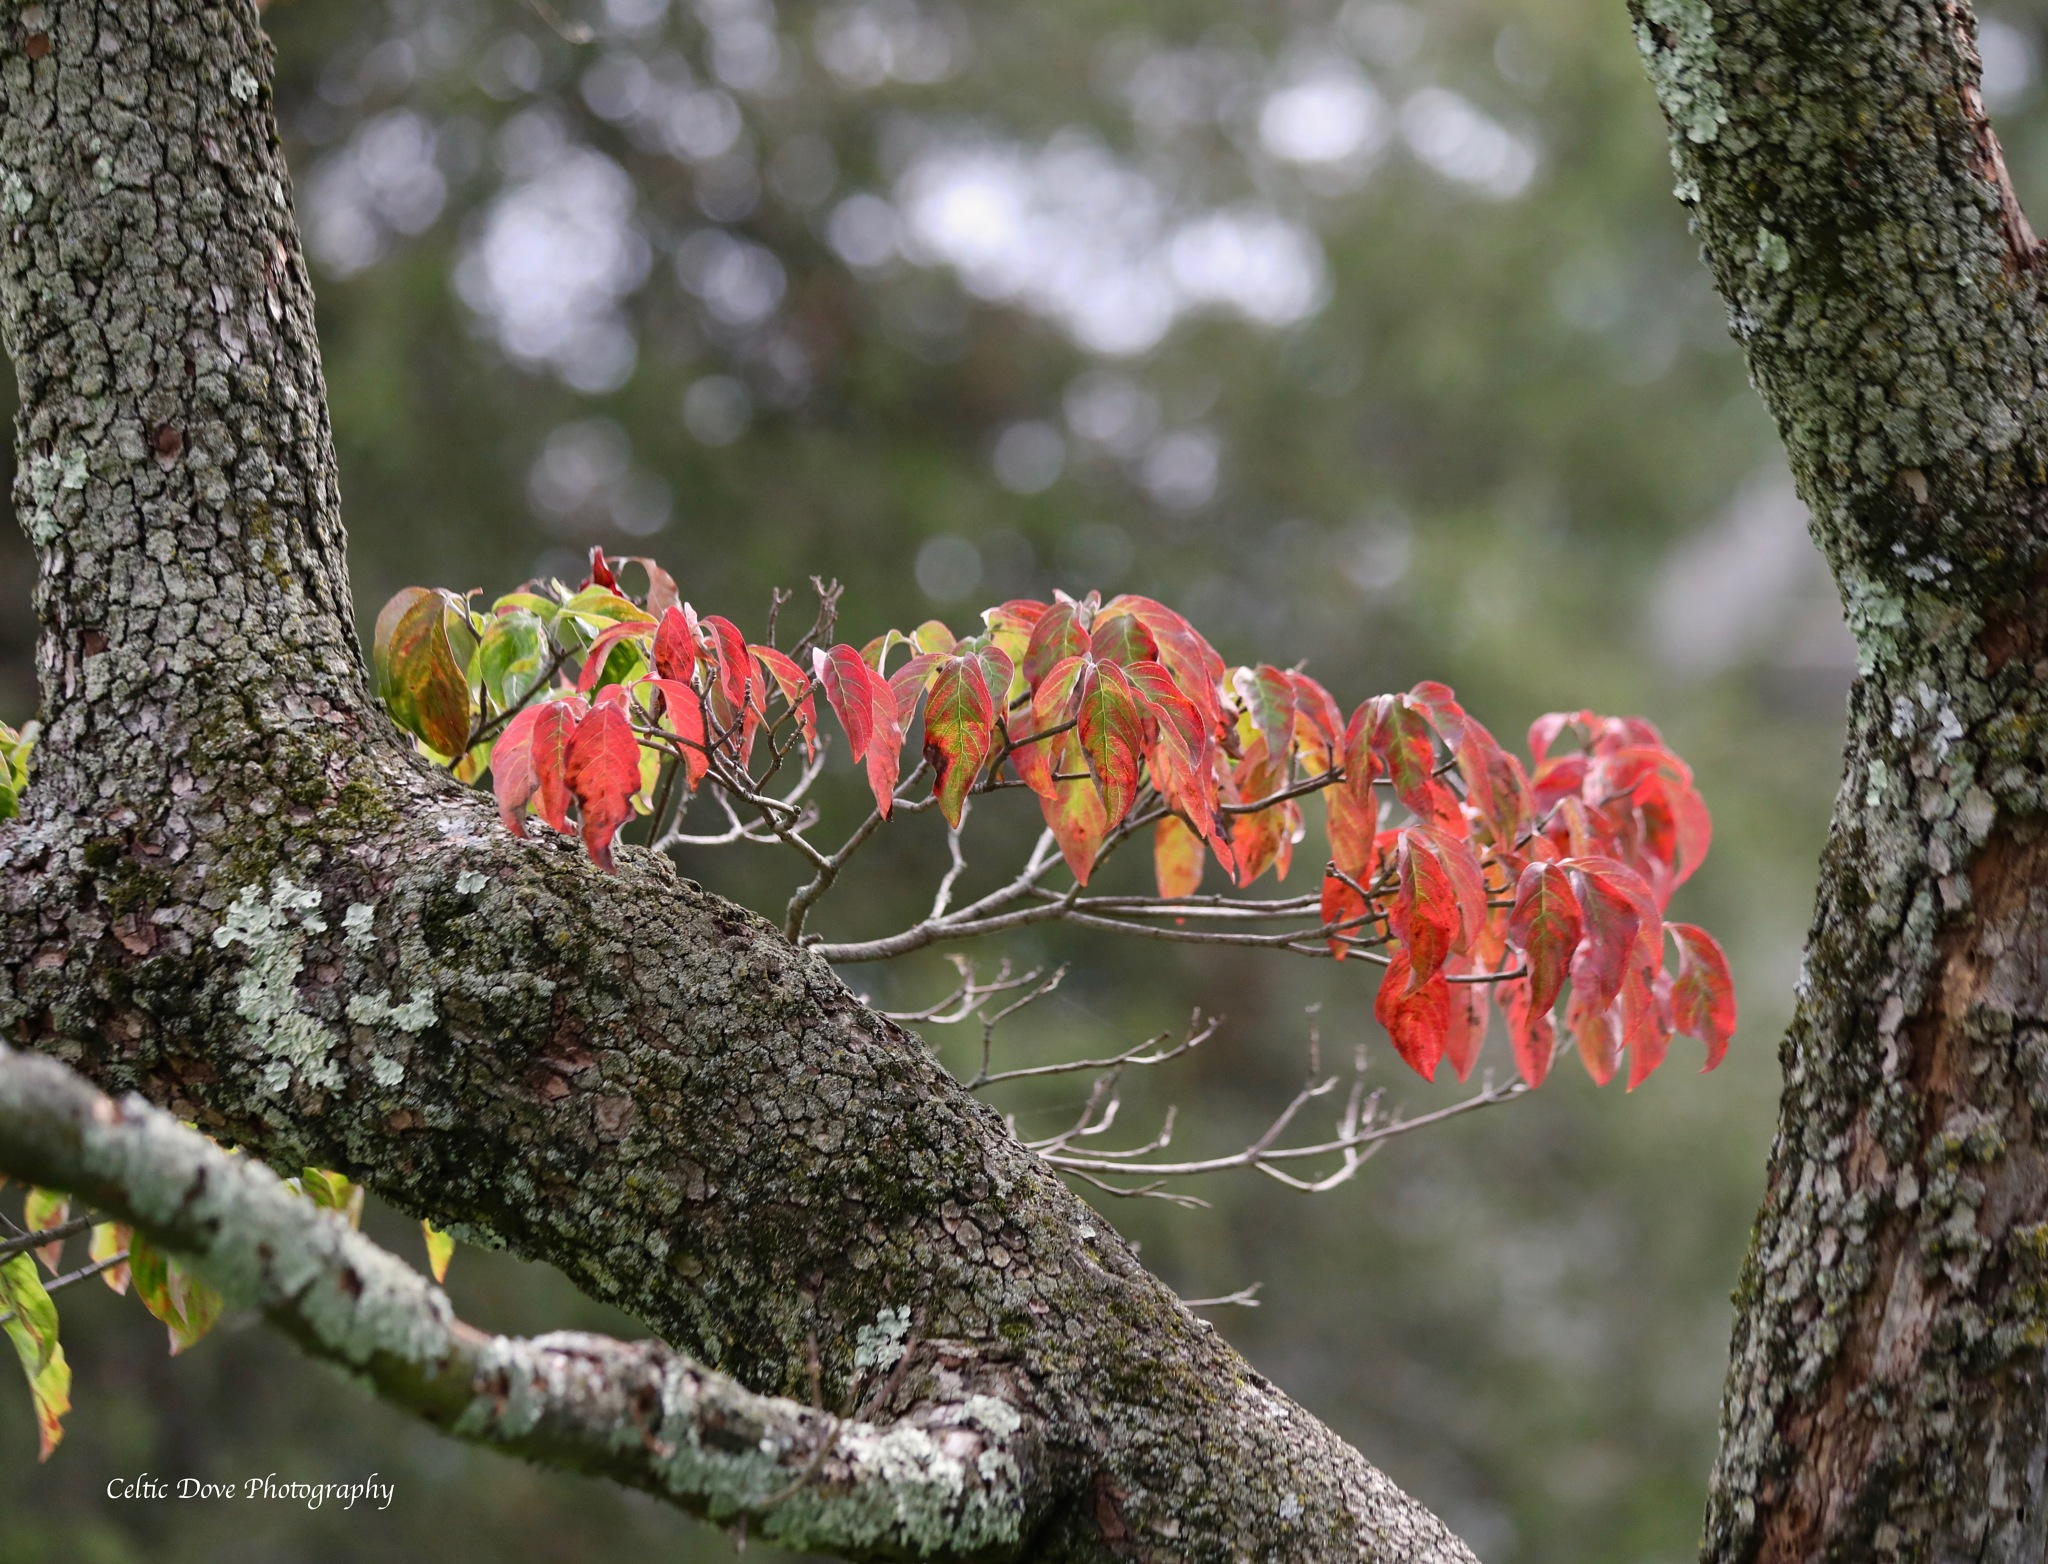 Changing Season by CelticDove